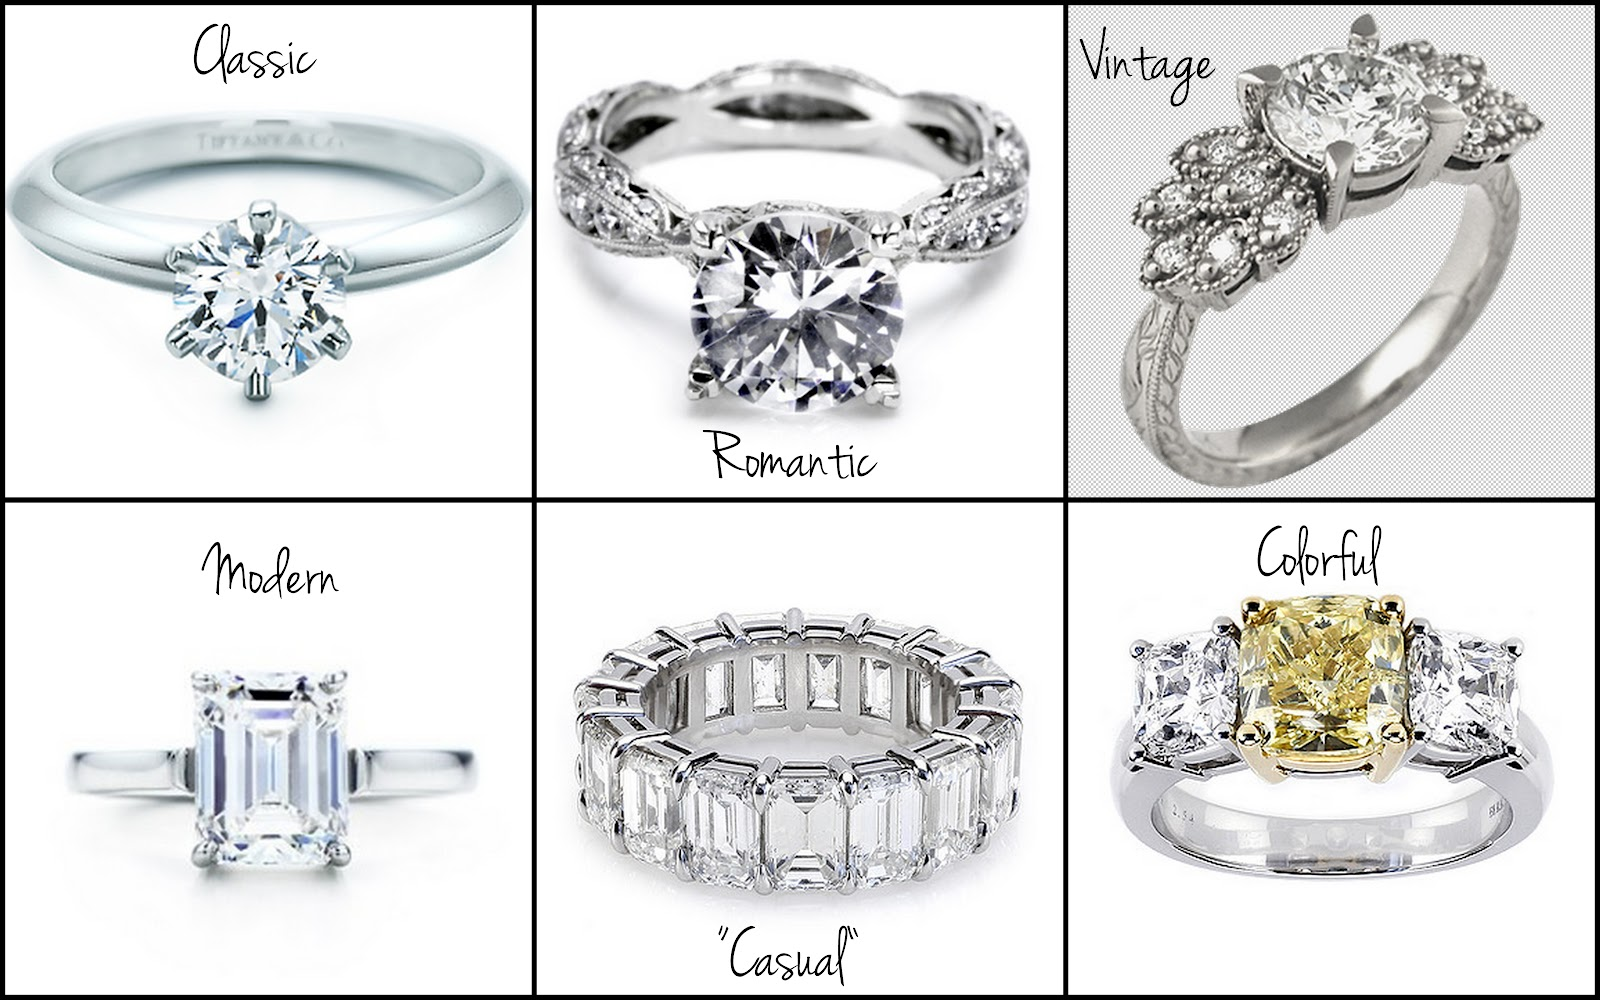 Jolie Jouel: How To: Choose An Engagement Ring